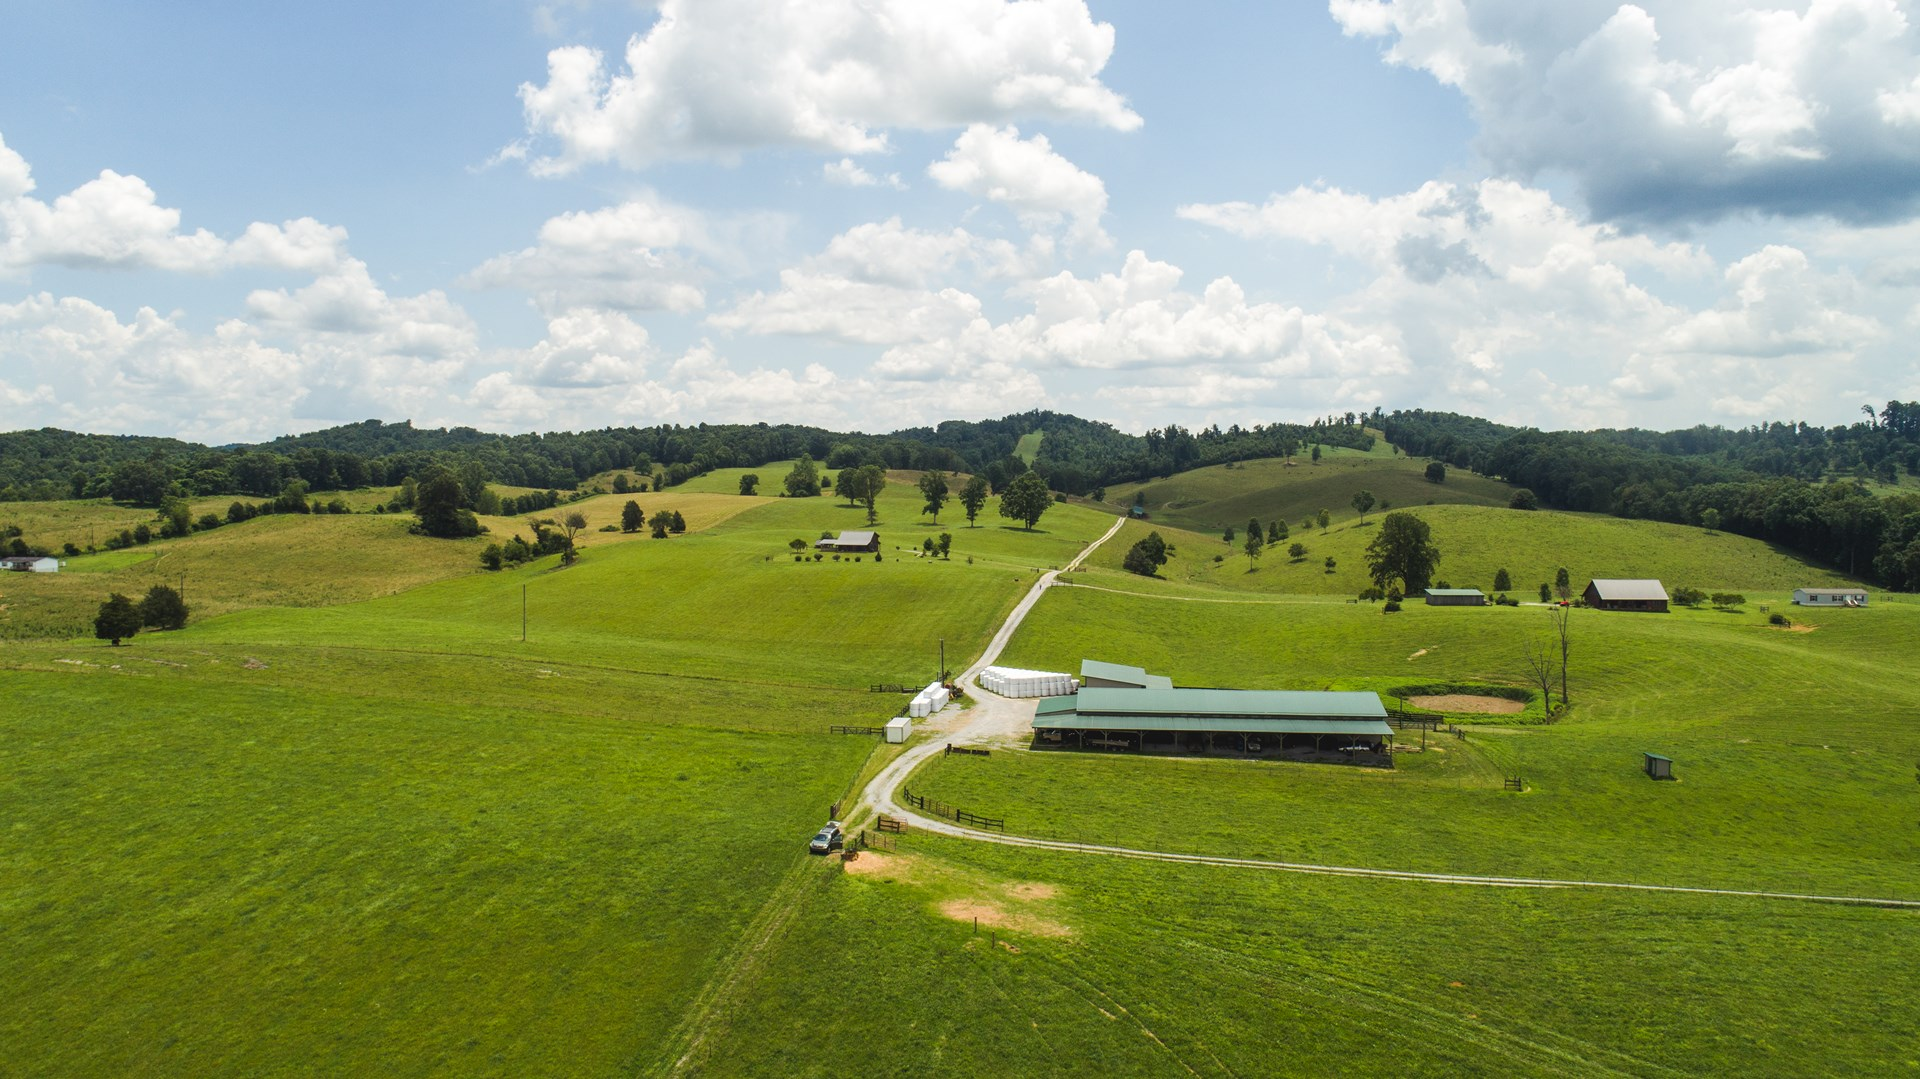 300 Acre Pristine Ranch Powell Valley, Ewing, VA For Sale